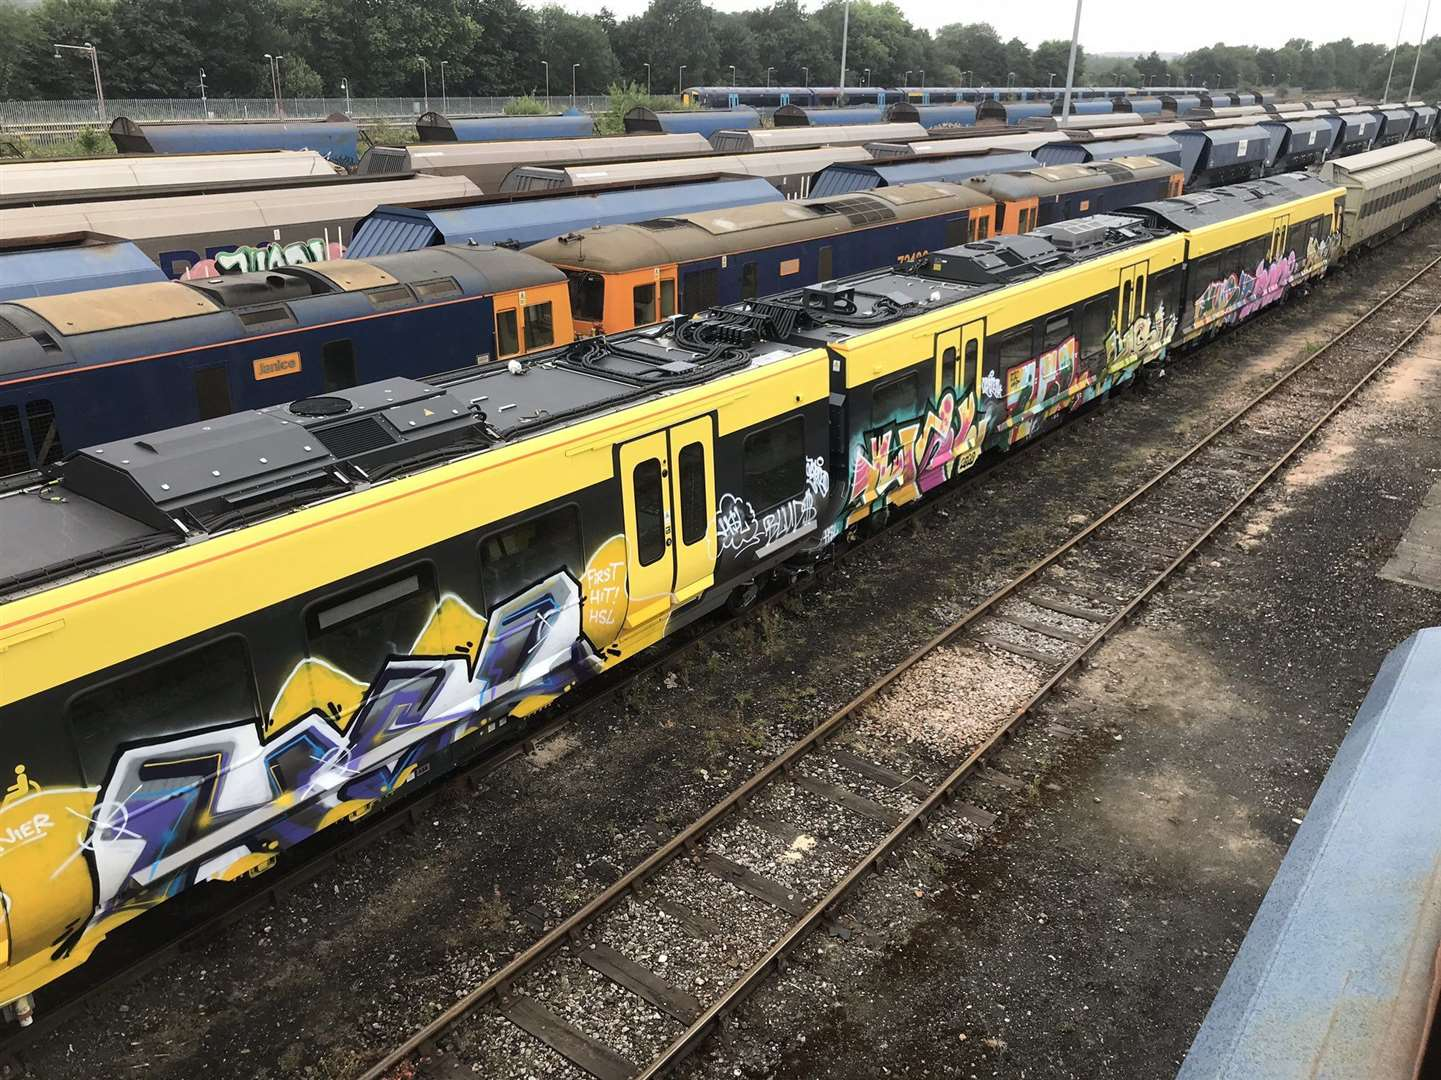 Vandalised brand new train carriages covered in graffiti while parked at Tonbridge rail depot. Picture: Nicholas Garner - Railmen of Kent (Twitter)